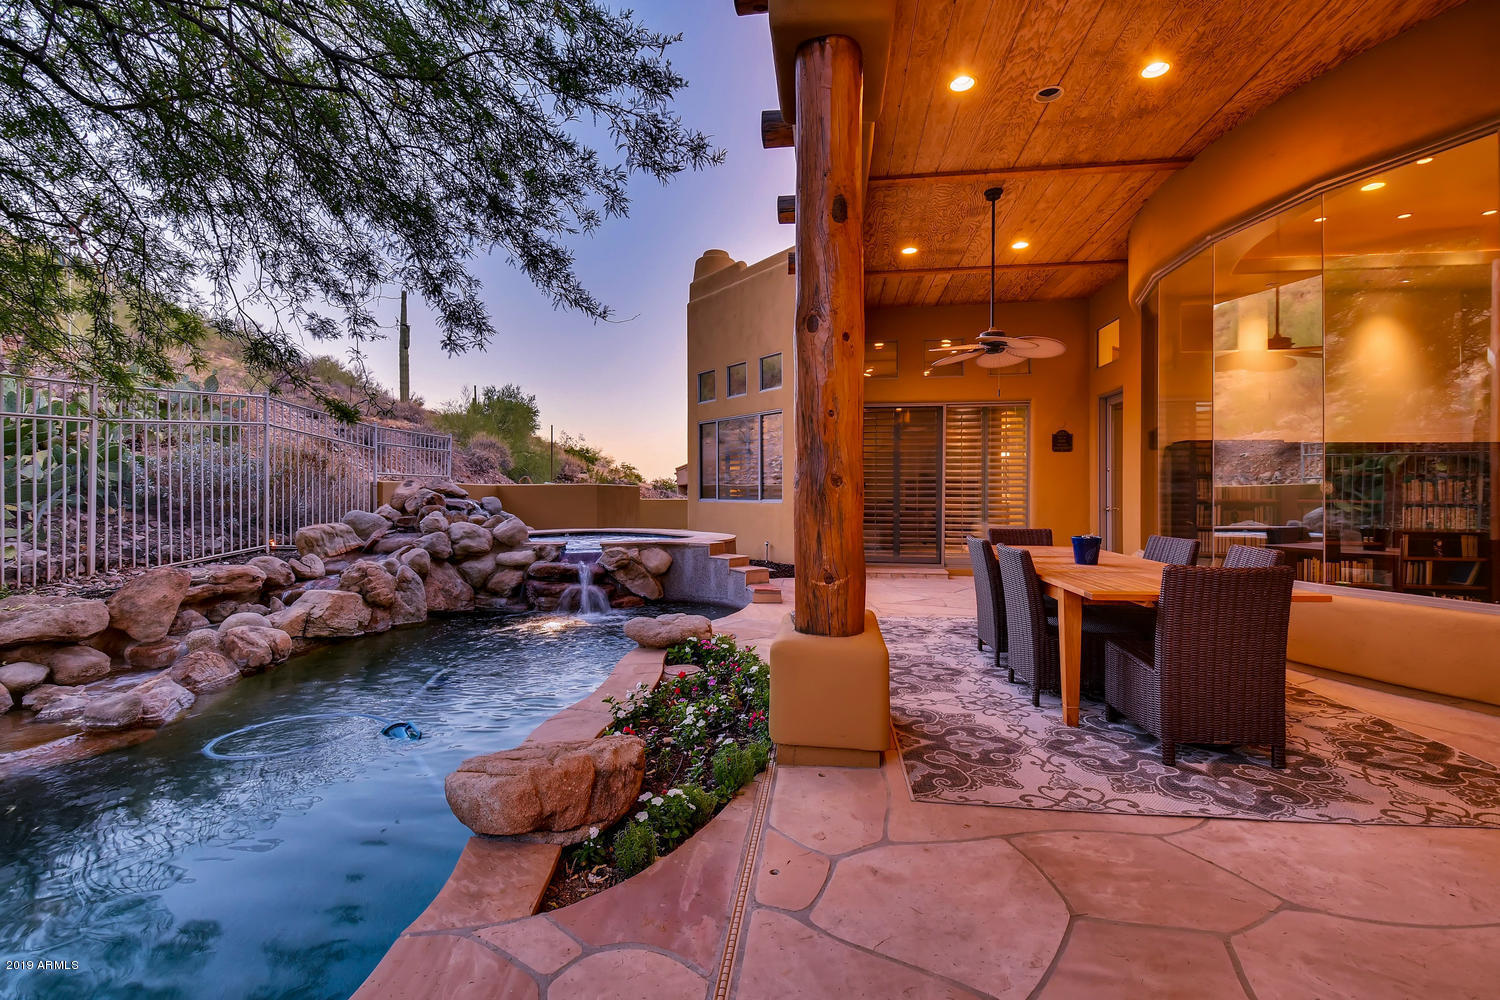 MLS 5948586 12305 N 130TH Street, Scottsdale, AZ 85259 Scottsdale AZ Private Pool